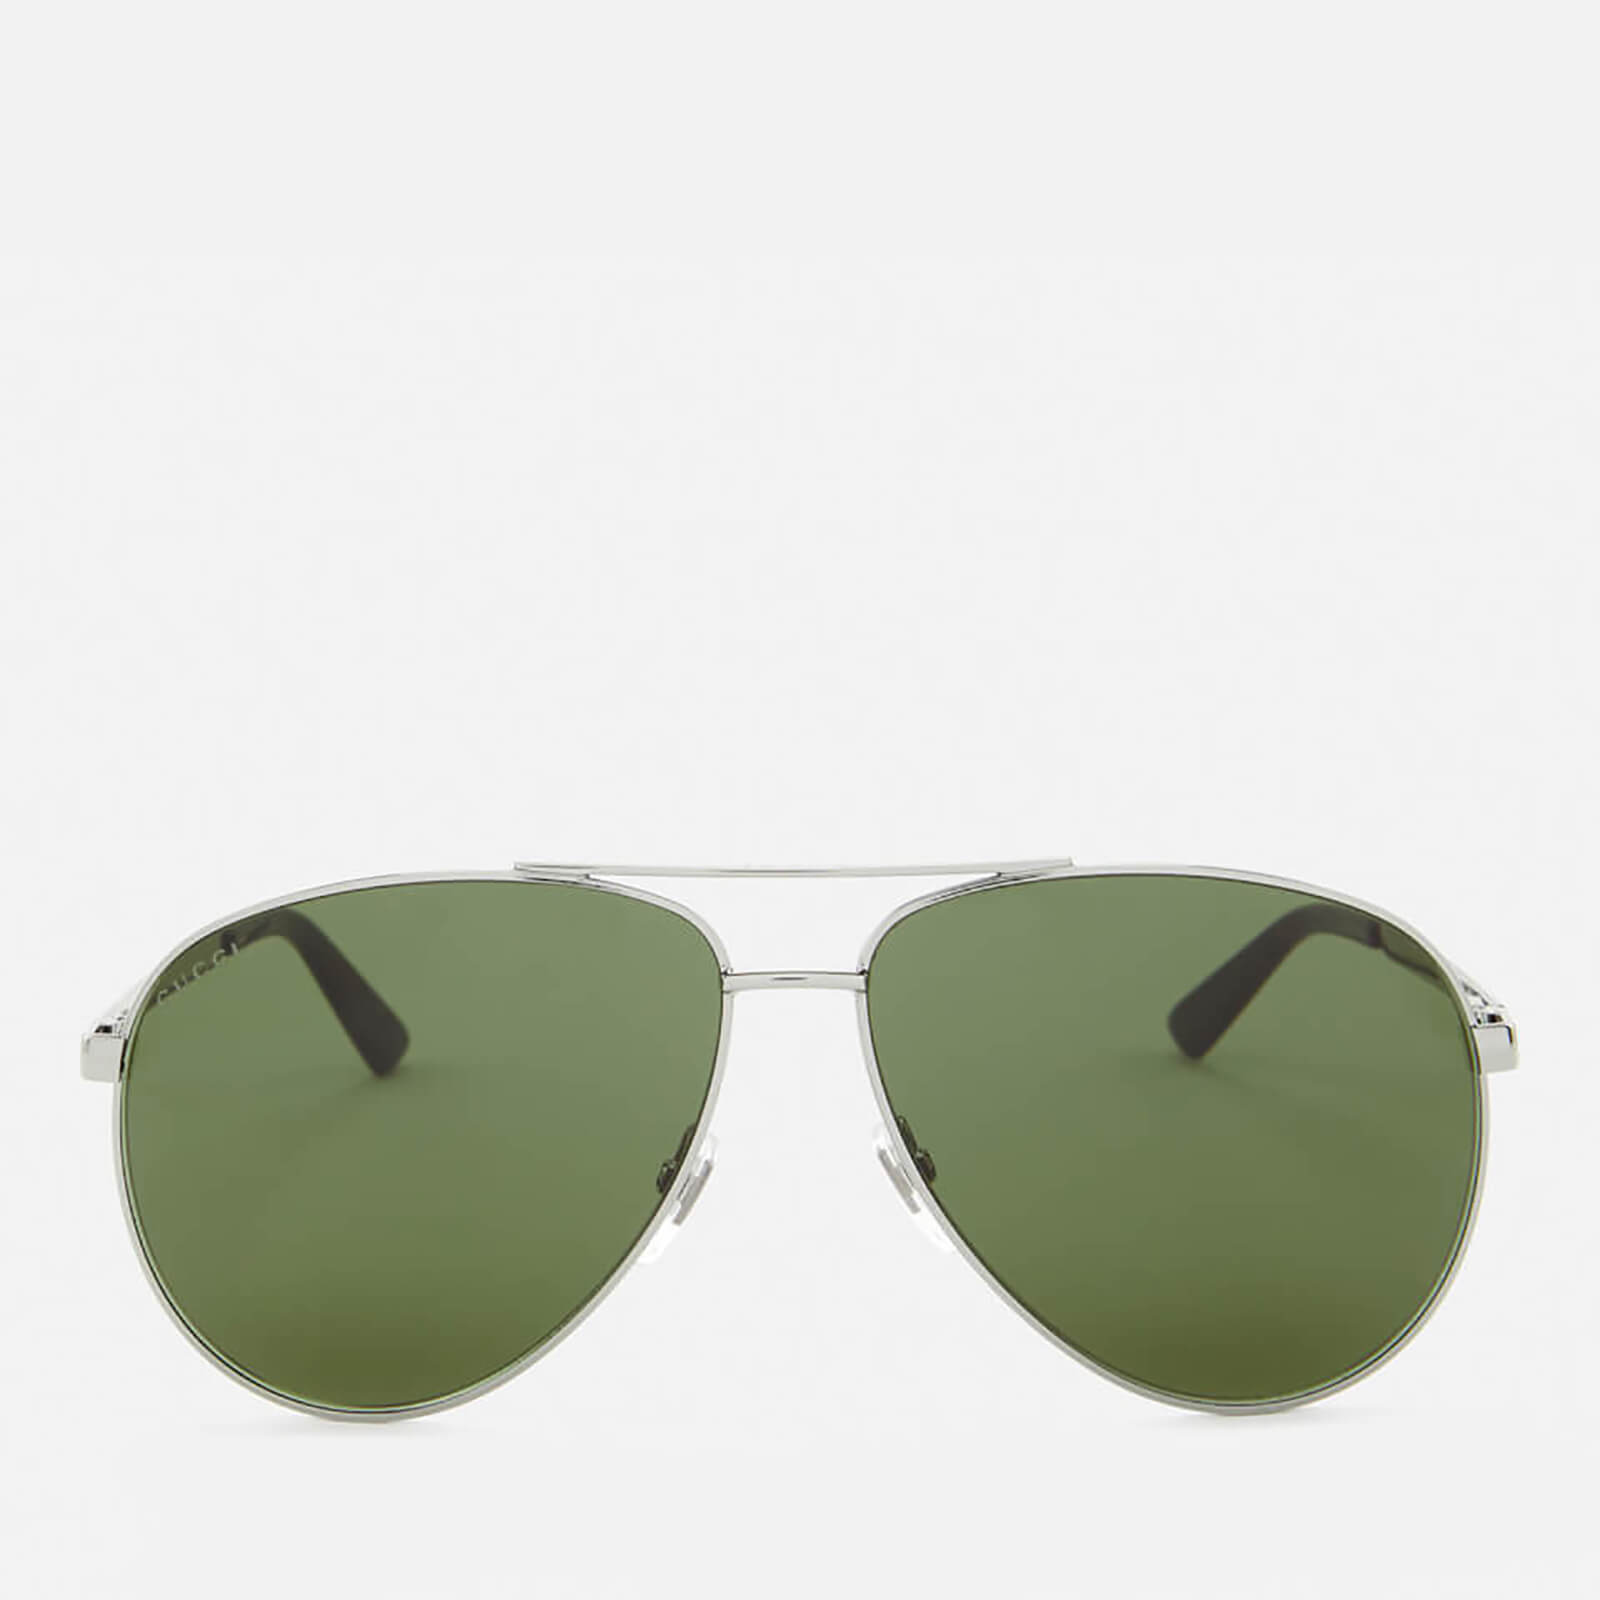 7213446ceb3 Gucci Men s Aviator Sunglasses - Green - Free UK Delivery over £50